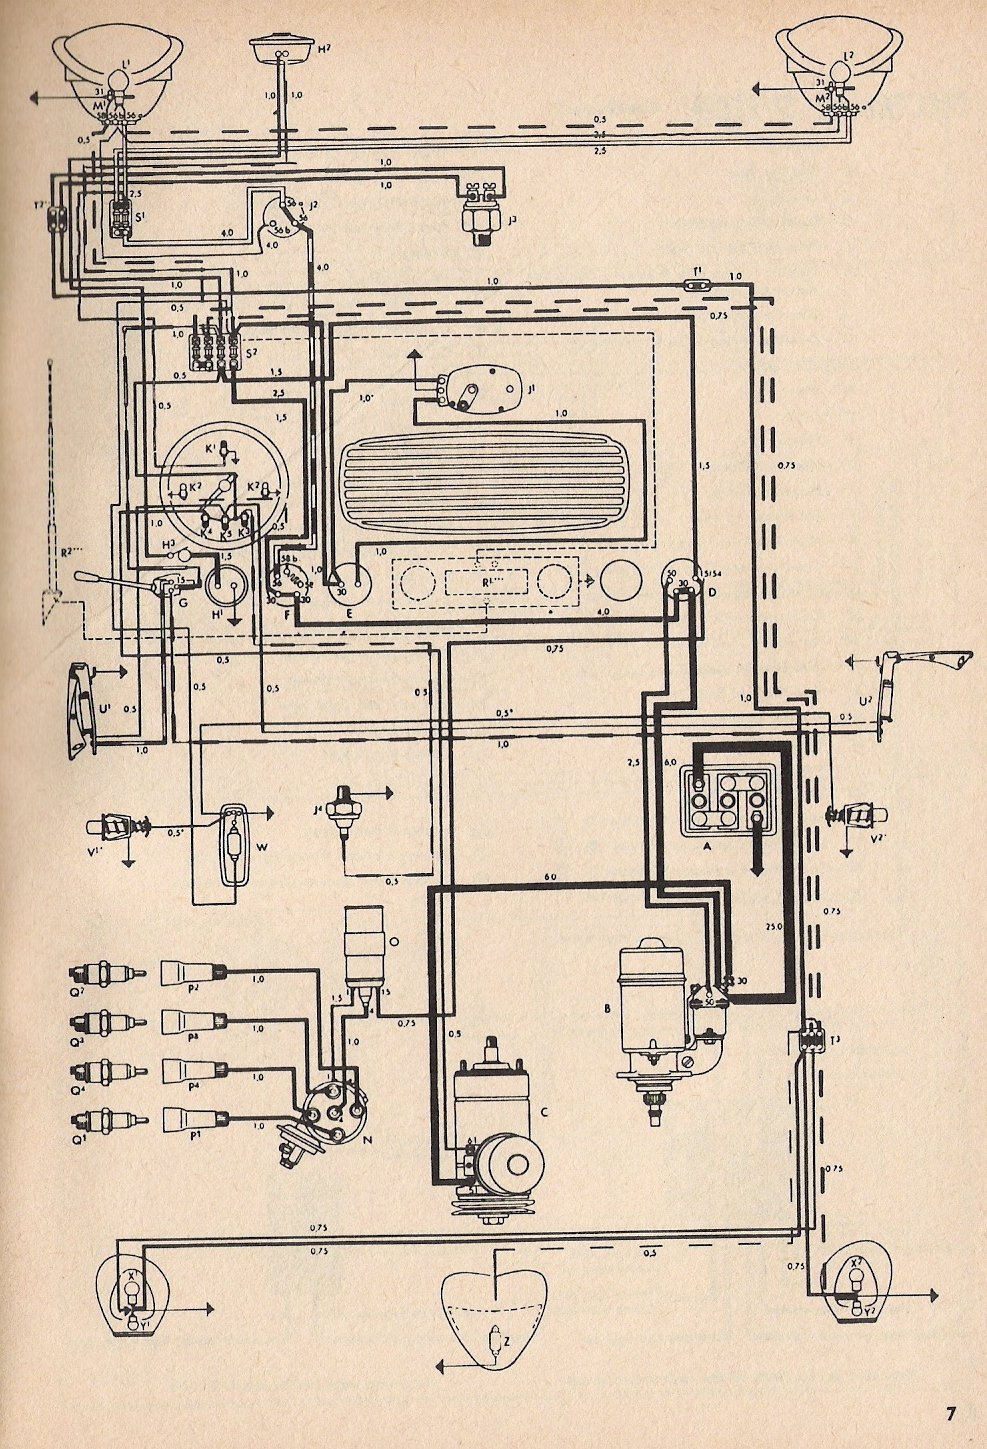 1971 vw wiring diagram wiring diagram progresif